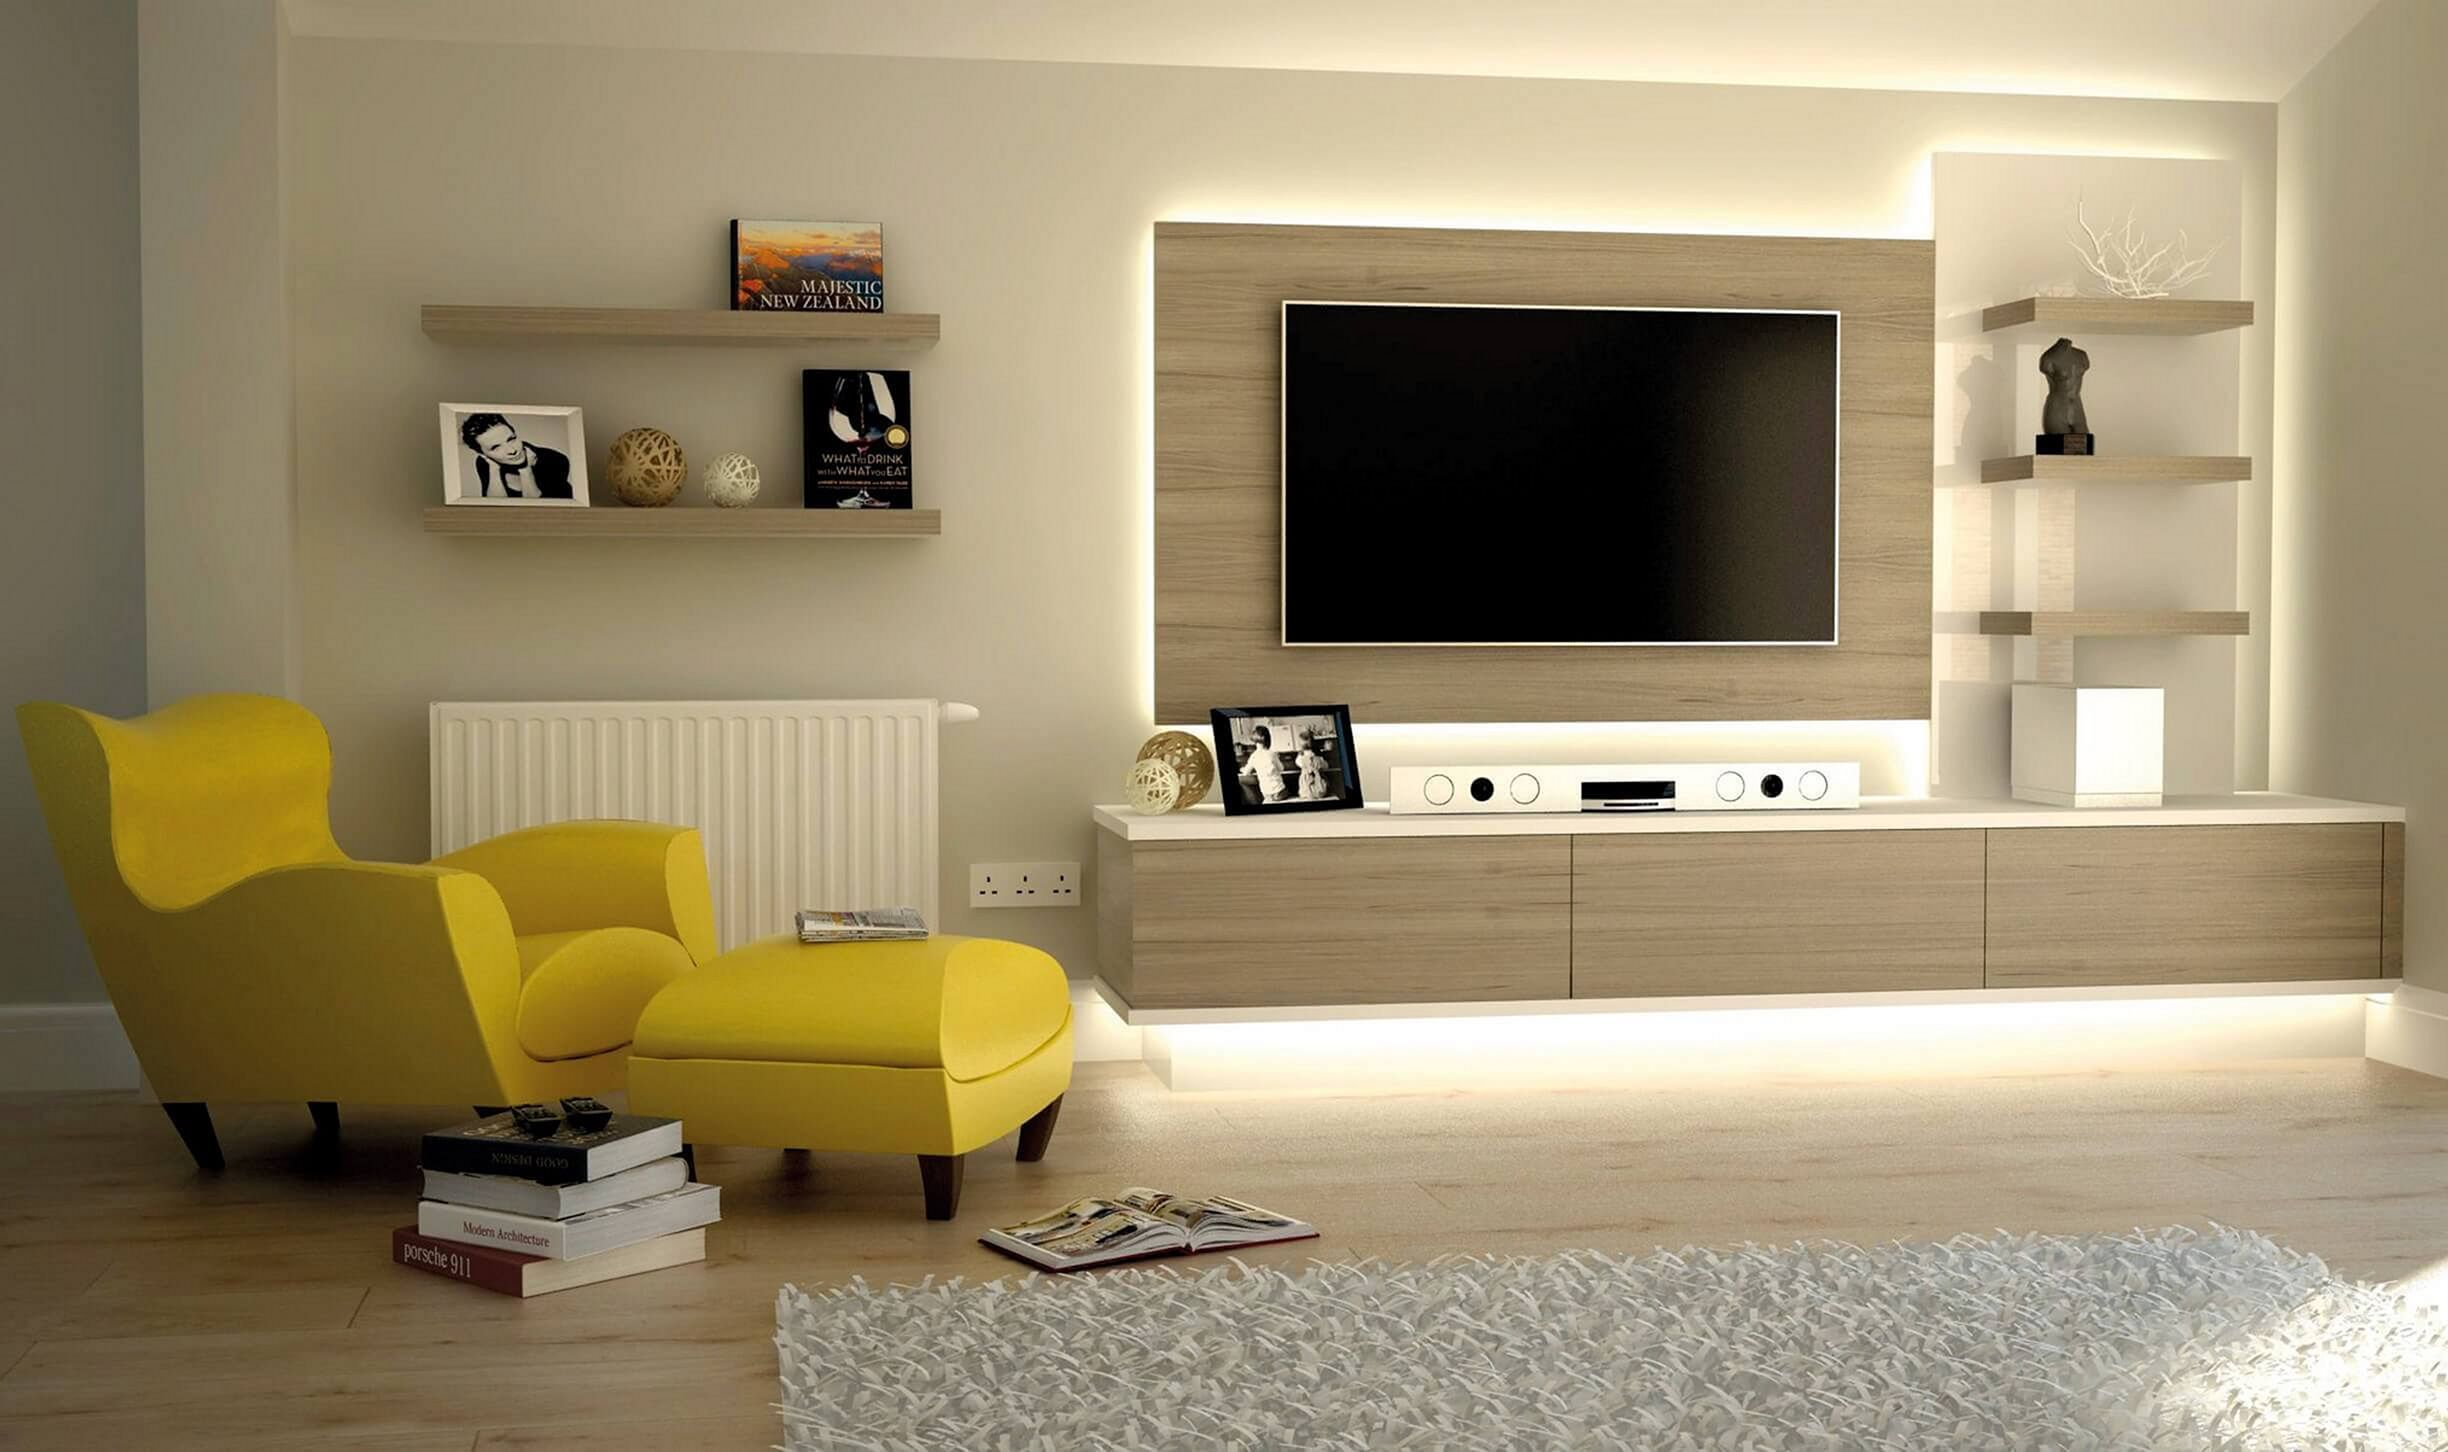 Amazing Tv Wall Design Ideas To Enhance Your Home Style Bedroom